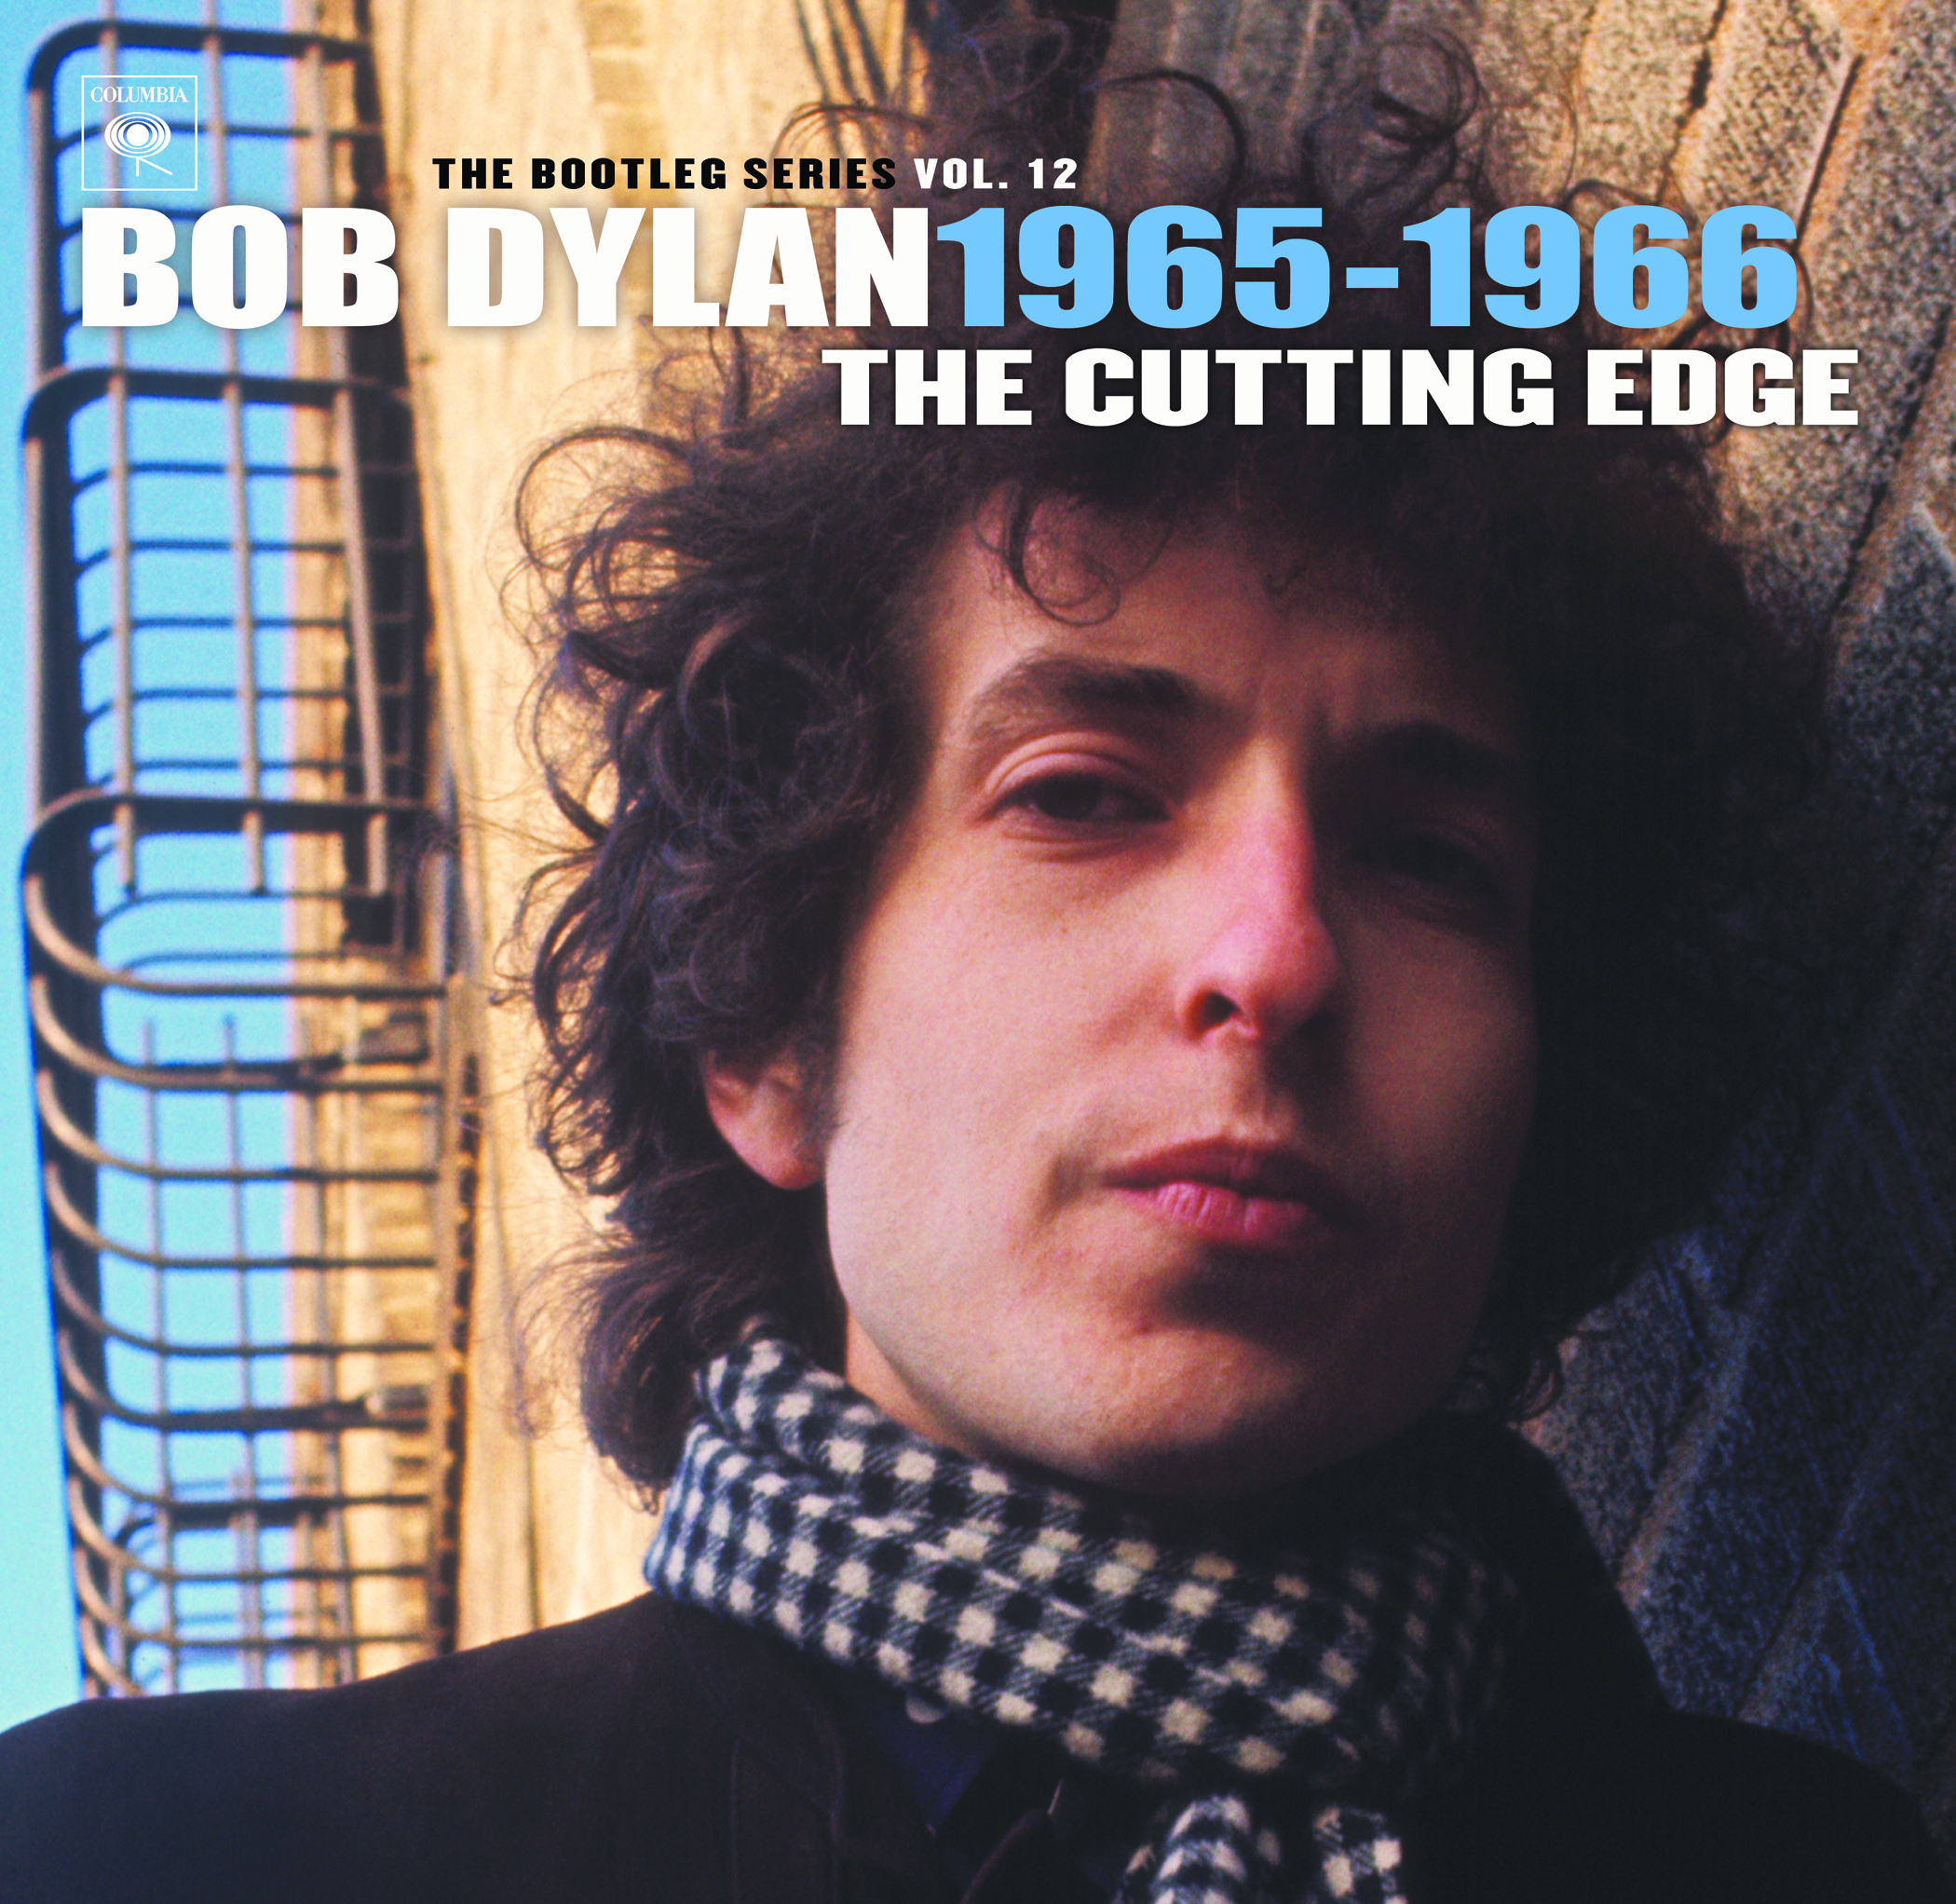 Episode 3 of 3: The Story Behind Bob Dylan's 'Blonde on Blonde' Album Cover